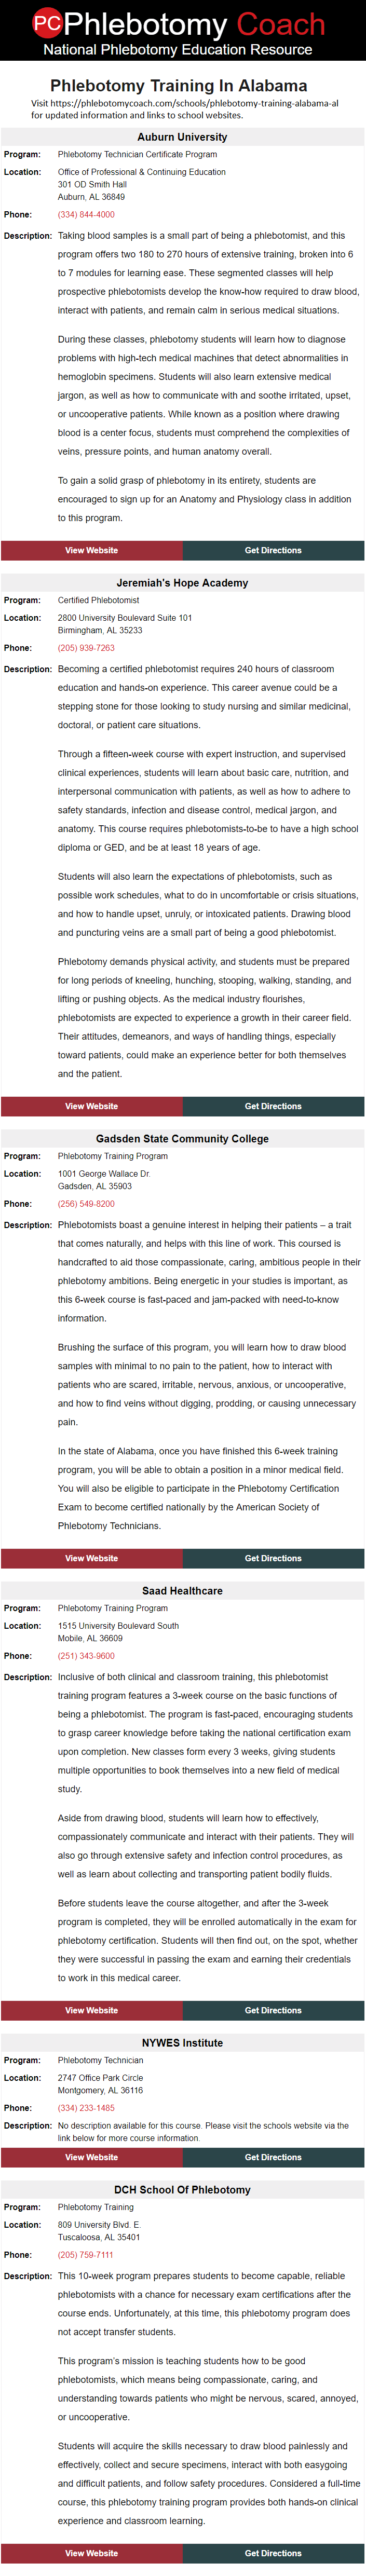 Phlebotomy training in alabama find accredited phlebotomy classes phlebotomy training in alabama find accredited phlebotomy classes in alabama click here for updated 1betcityfo Choice Image